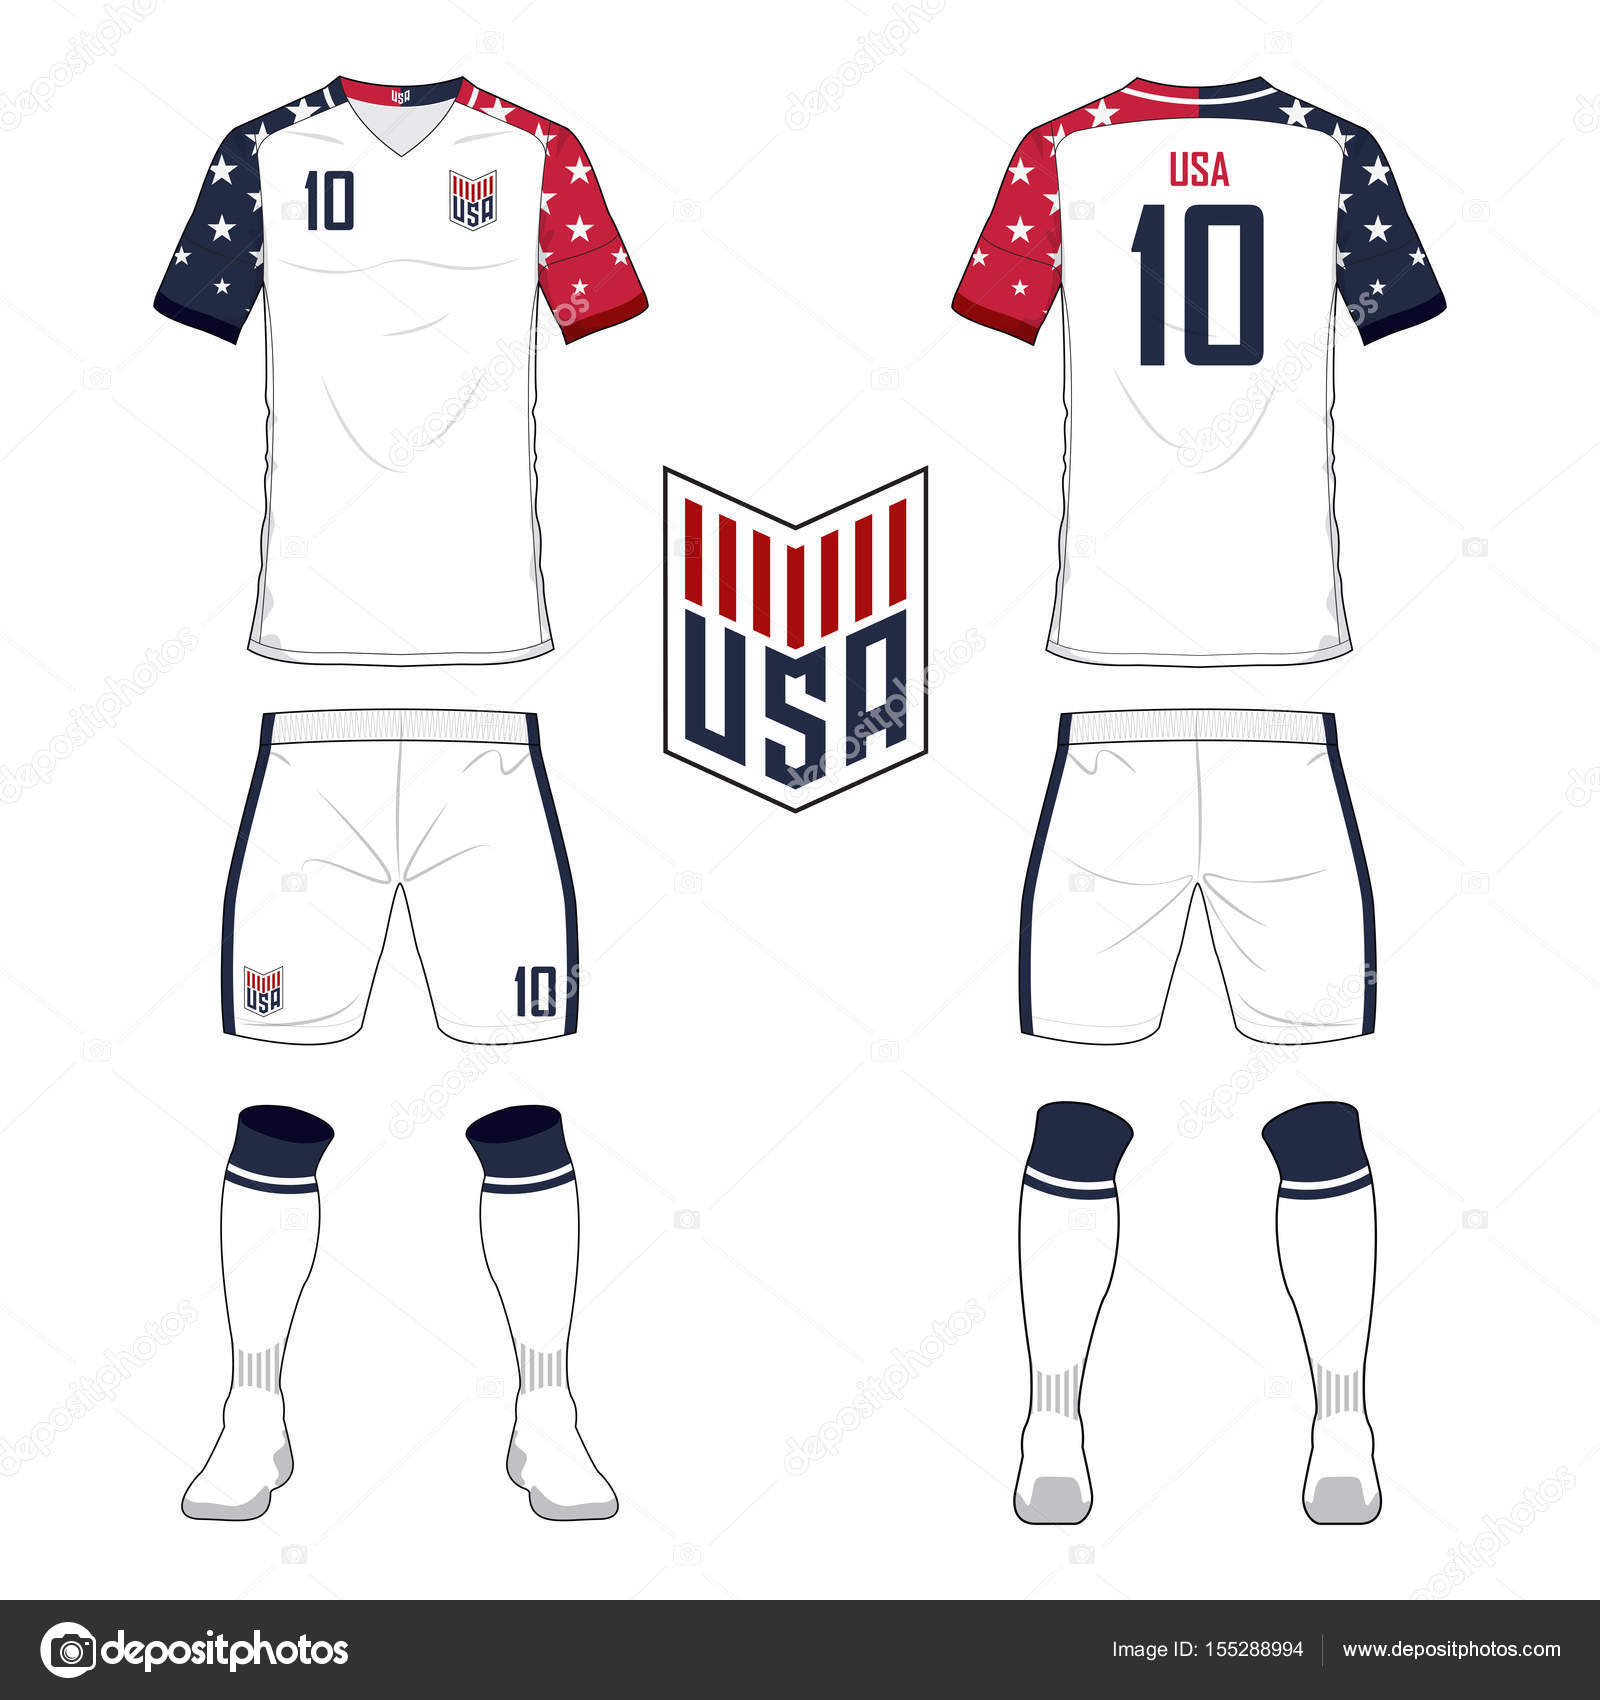 Soccer Jersey Or Football Kit Template For United States Of America National Team Front